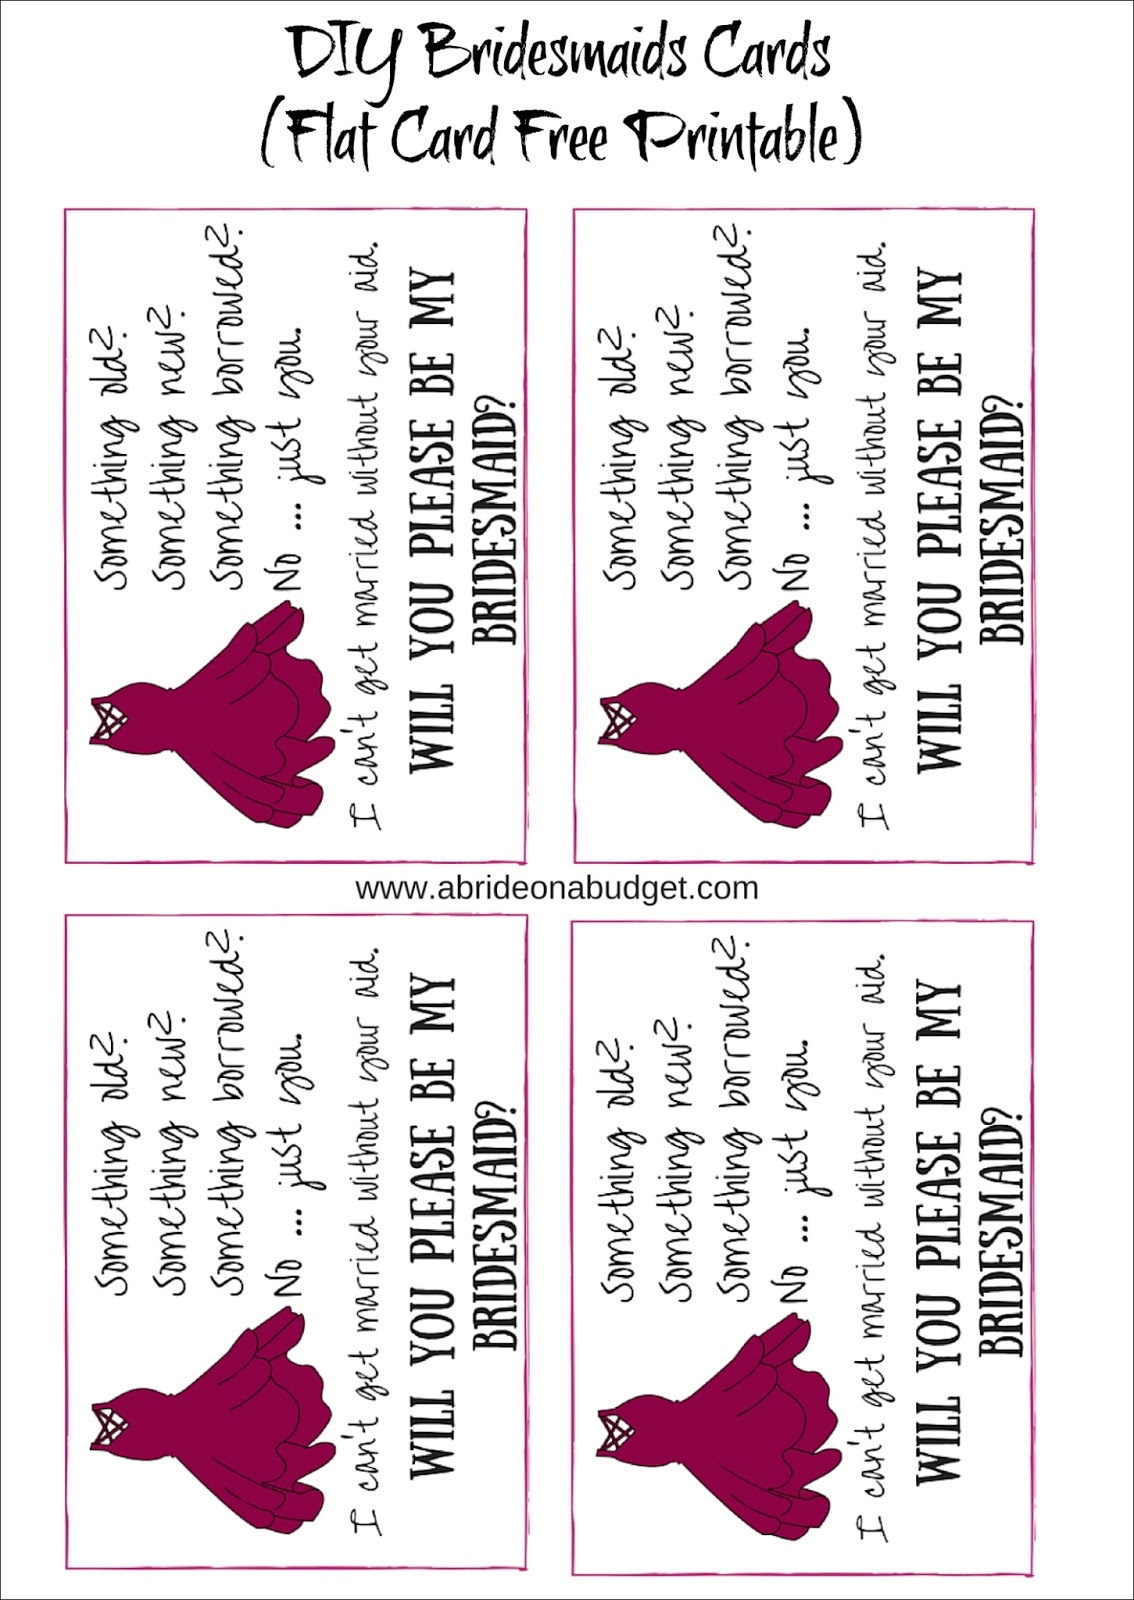 picture relating to Bridesmaid Proposal Printable referred to as Do-it-yourself Bridesmaids Playing cards (In addition a totally free printable for flat and